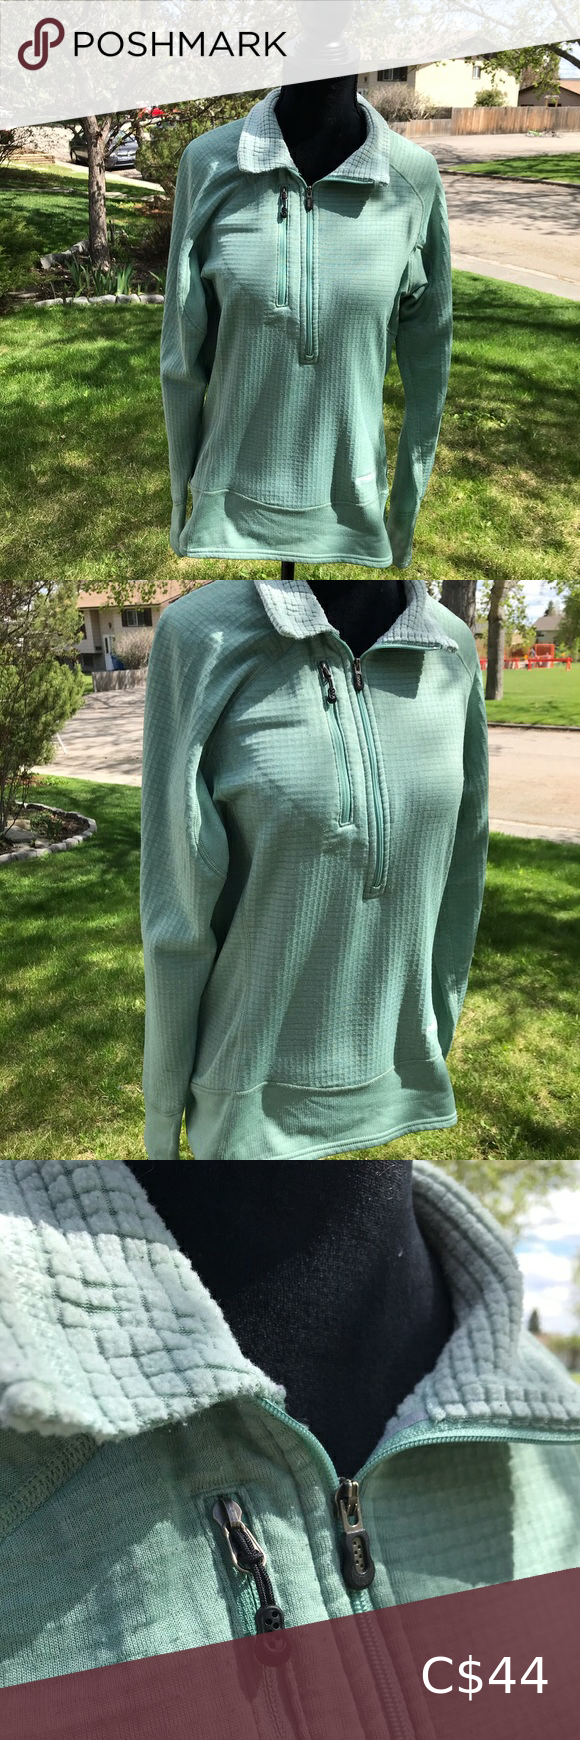 PATAGONIA zip up fleece inner lining R1 pullover Great